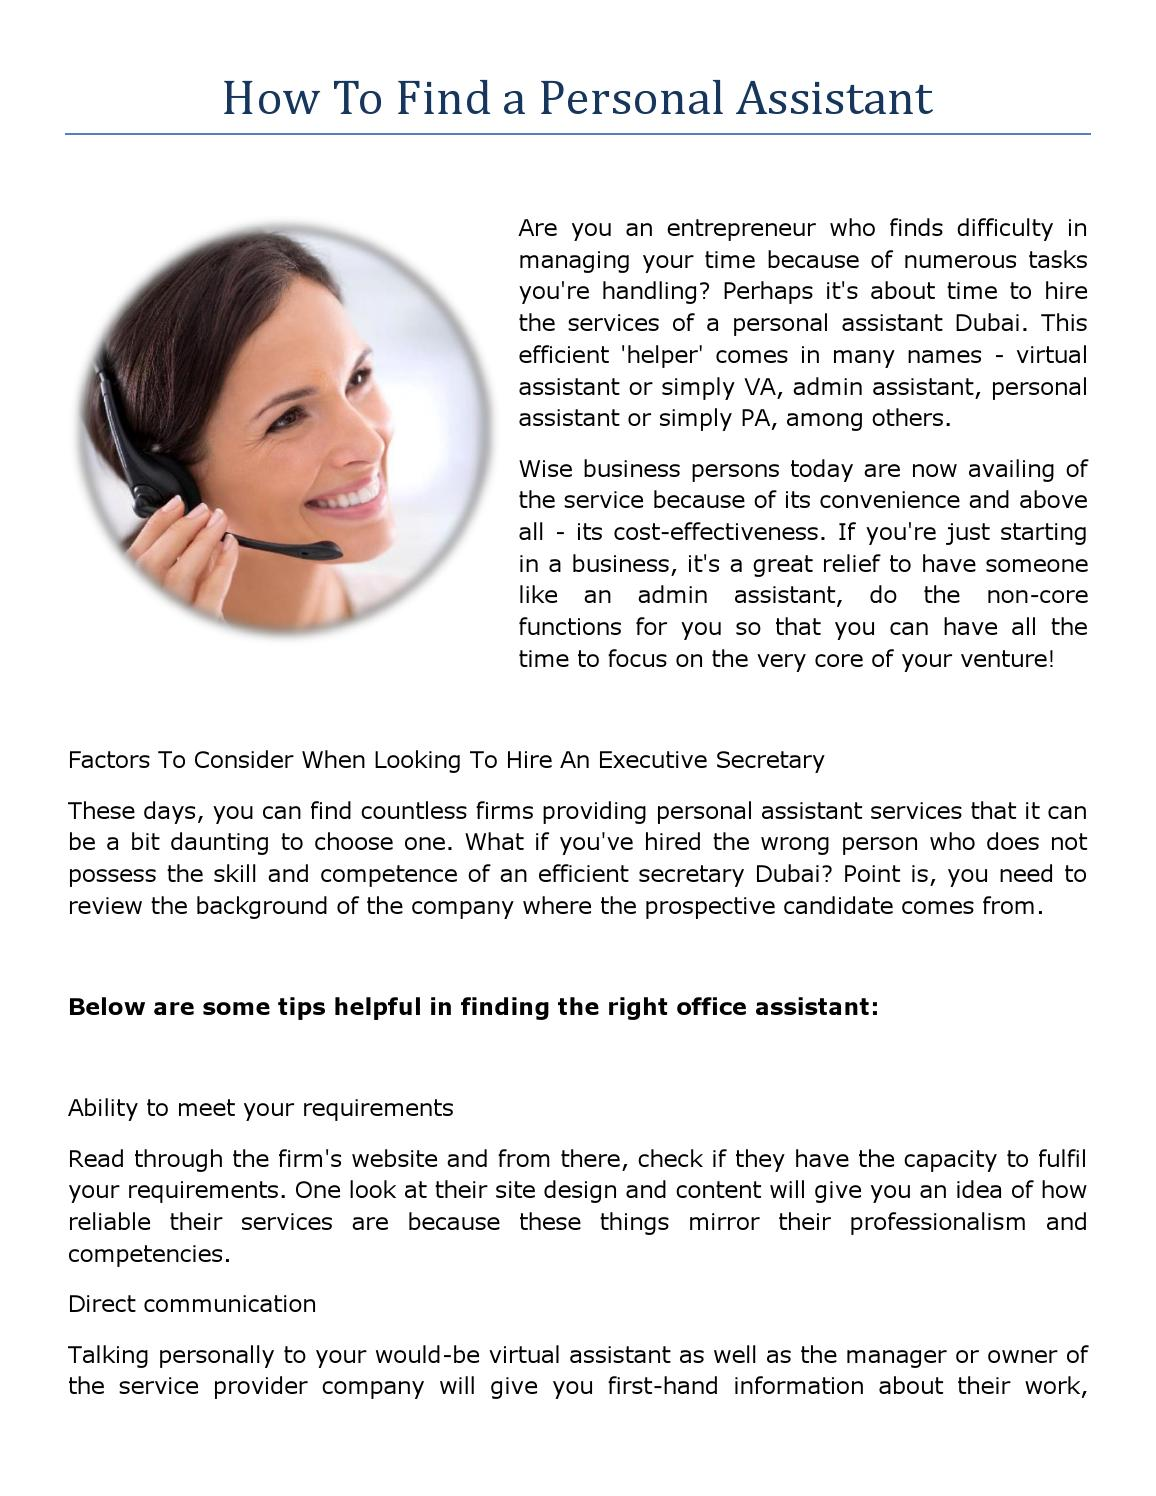 How to Find a Personal Assistant by virtualofficeuae - issuu